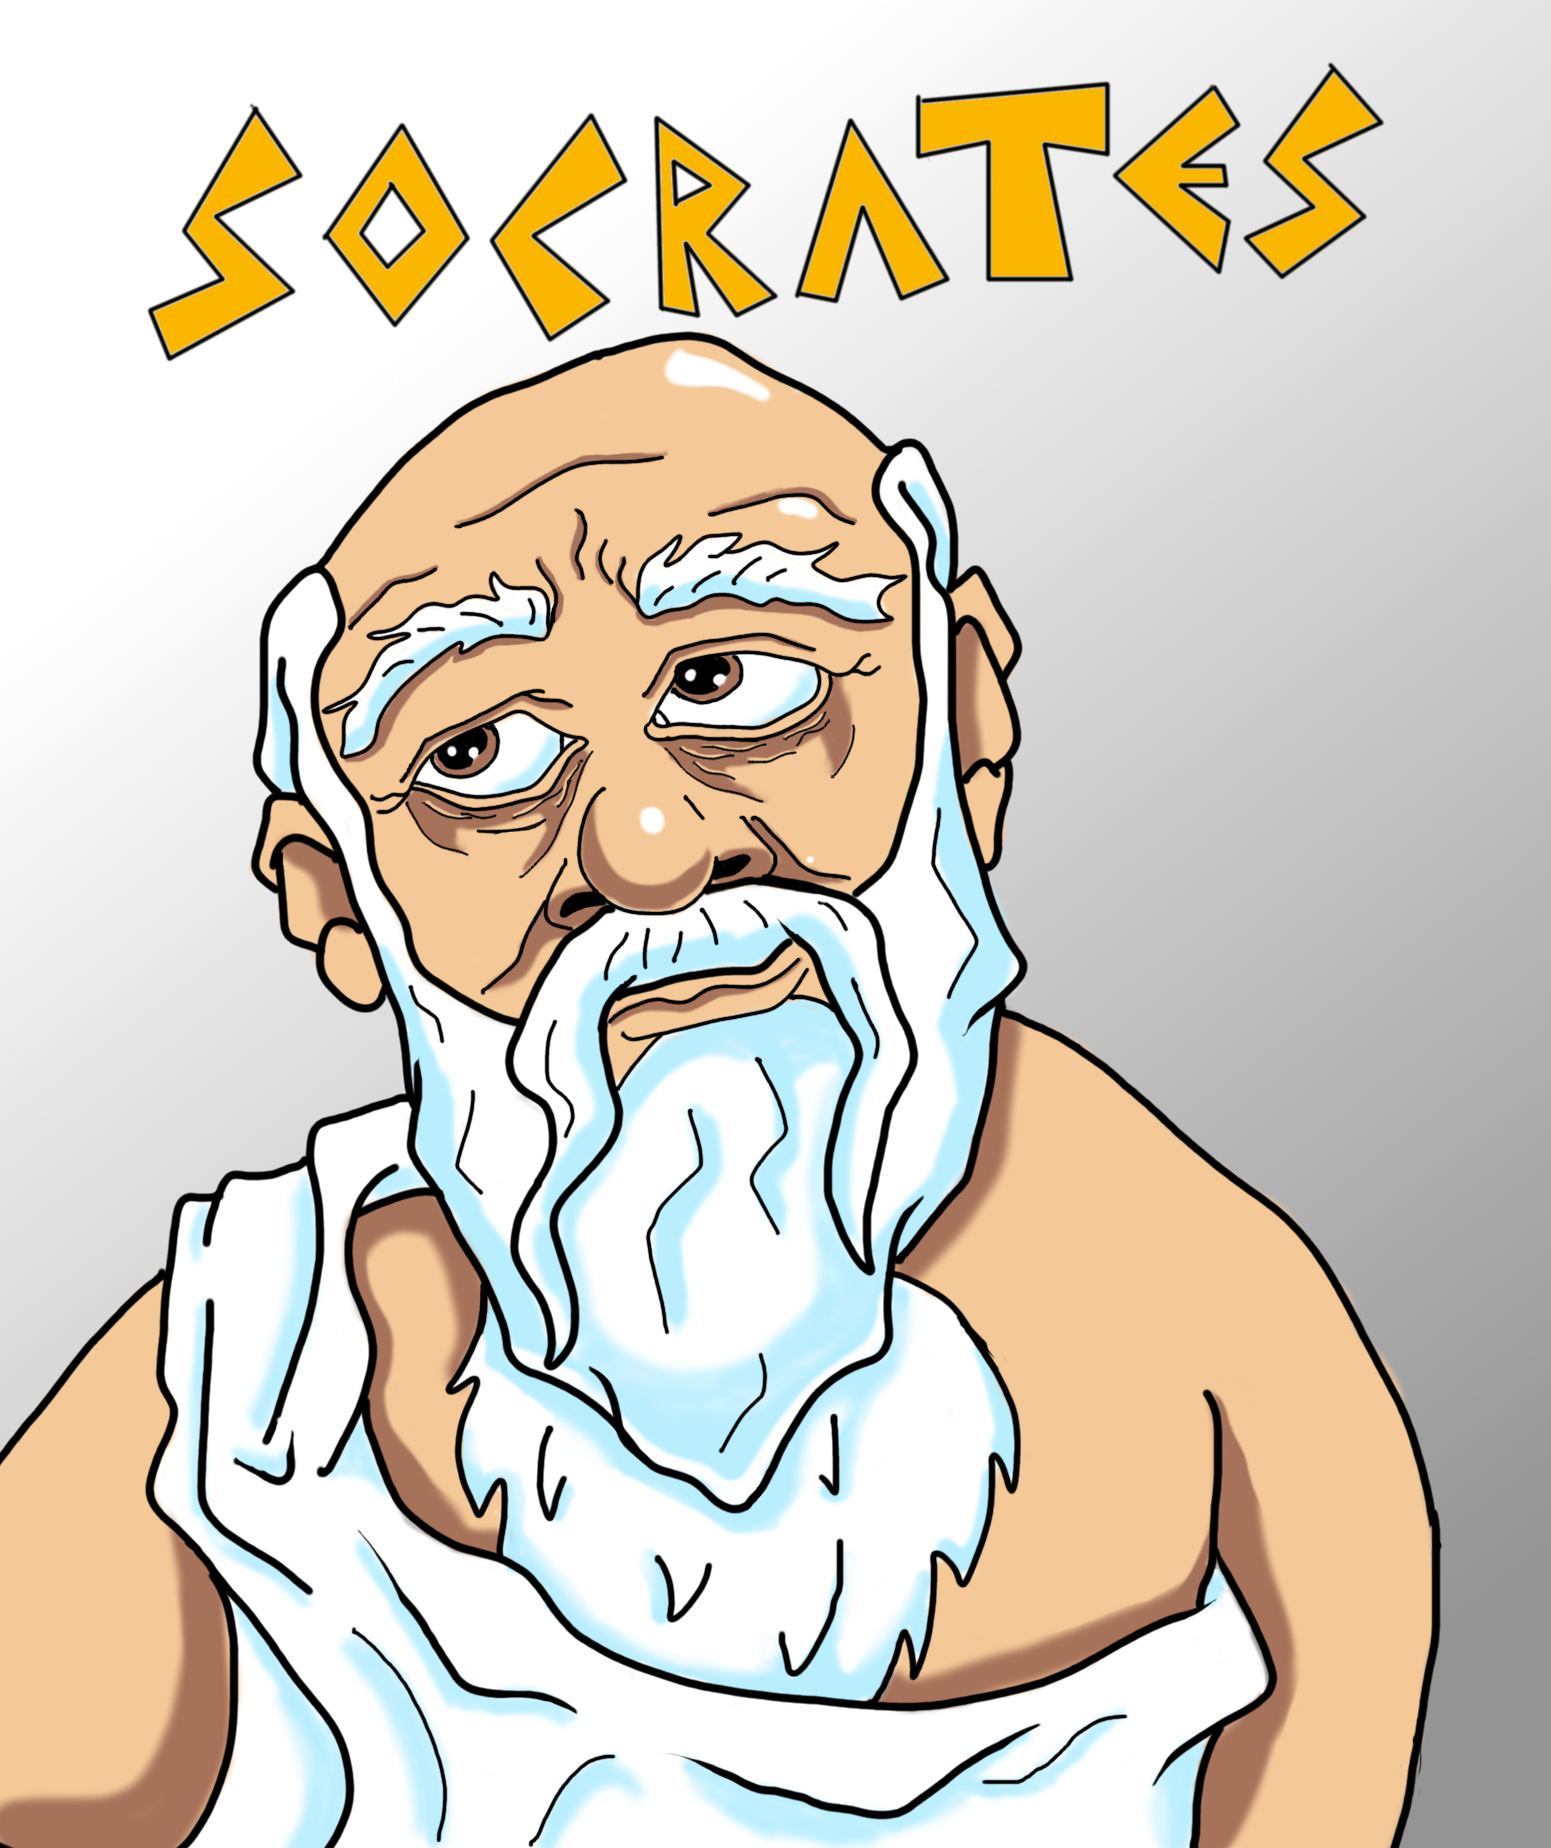 Socrates in Plato's Apology | There It Is . org